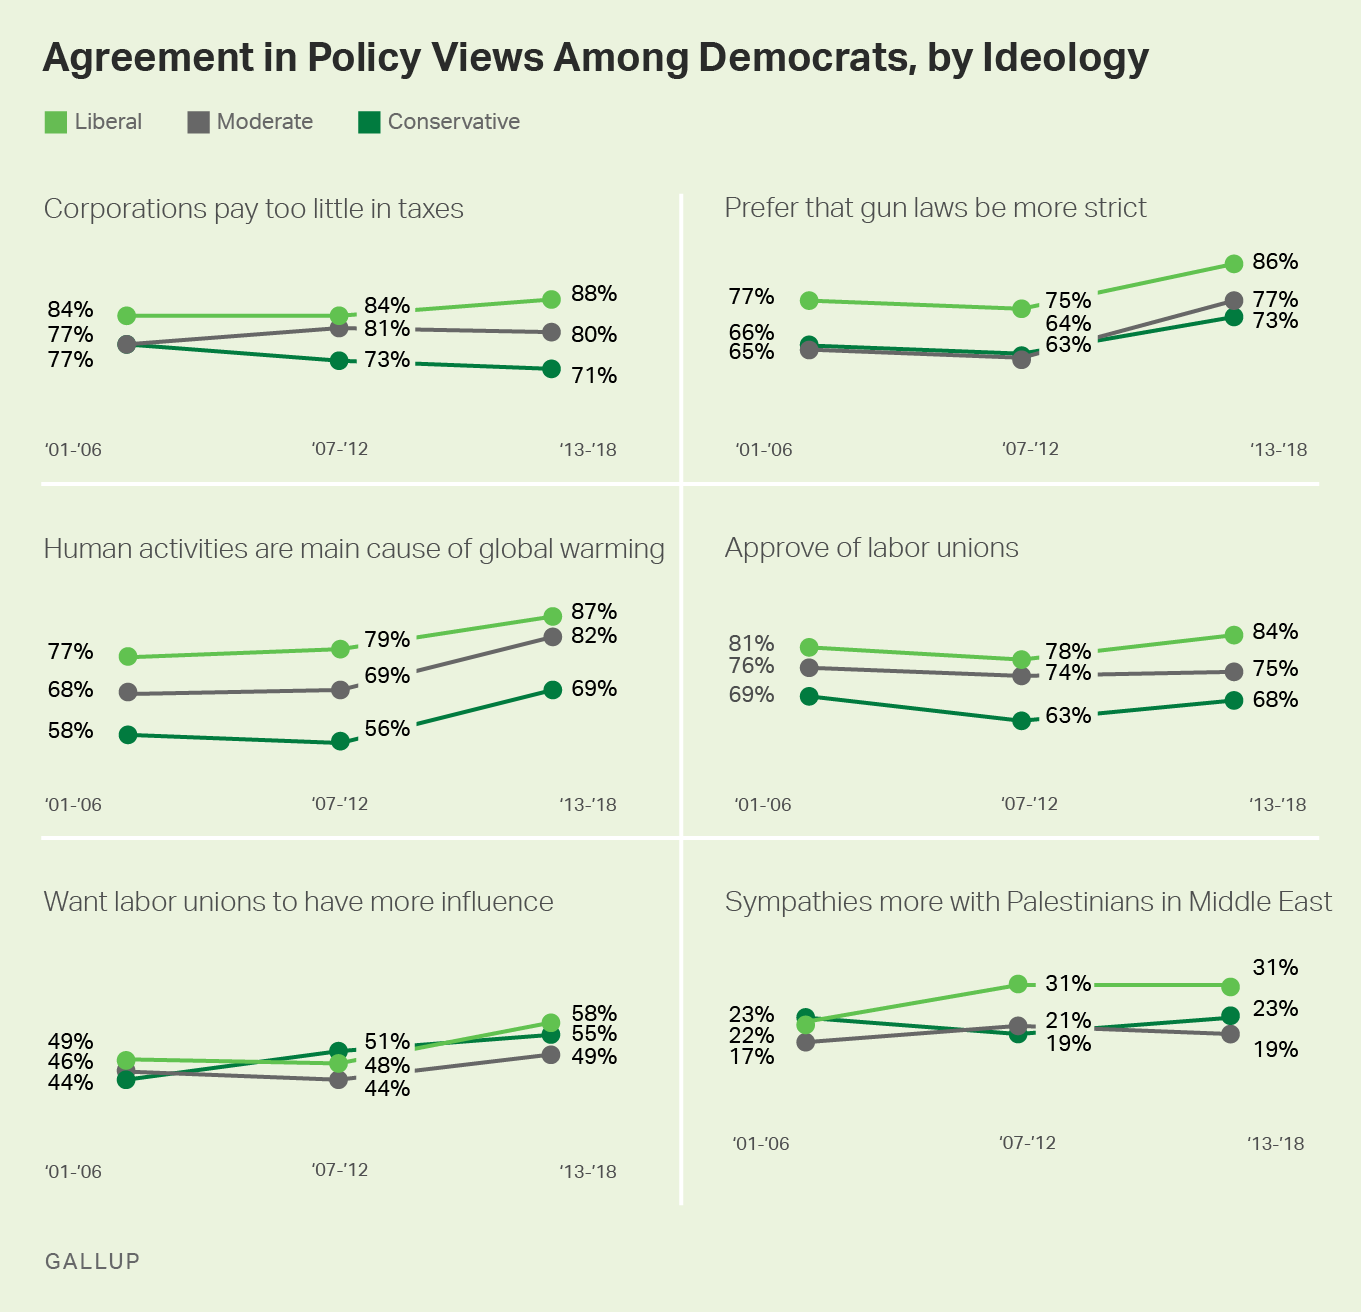 Small multiple graphs. Agreement in policy views among Democrats, by ideology, 2001-2018 trends.